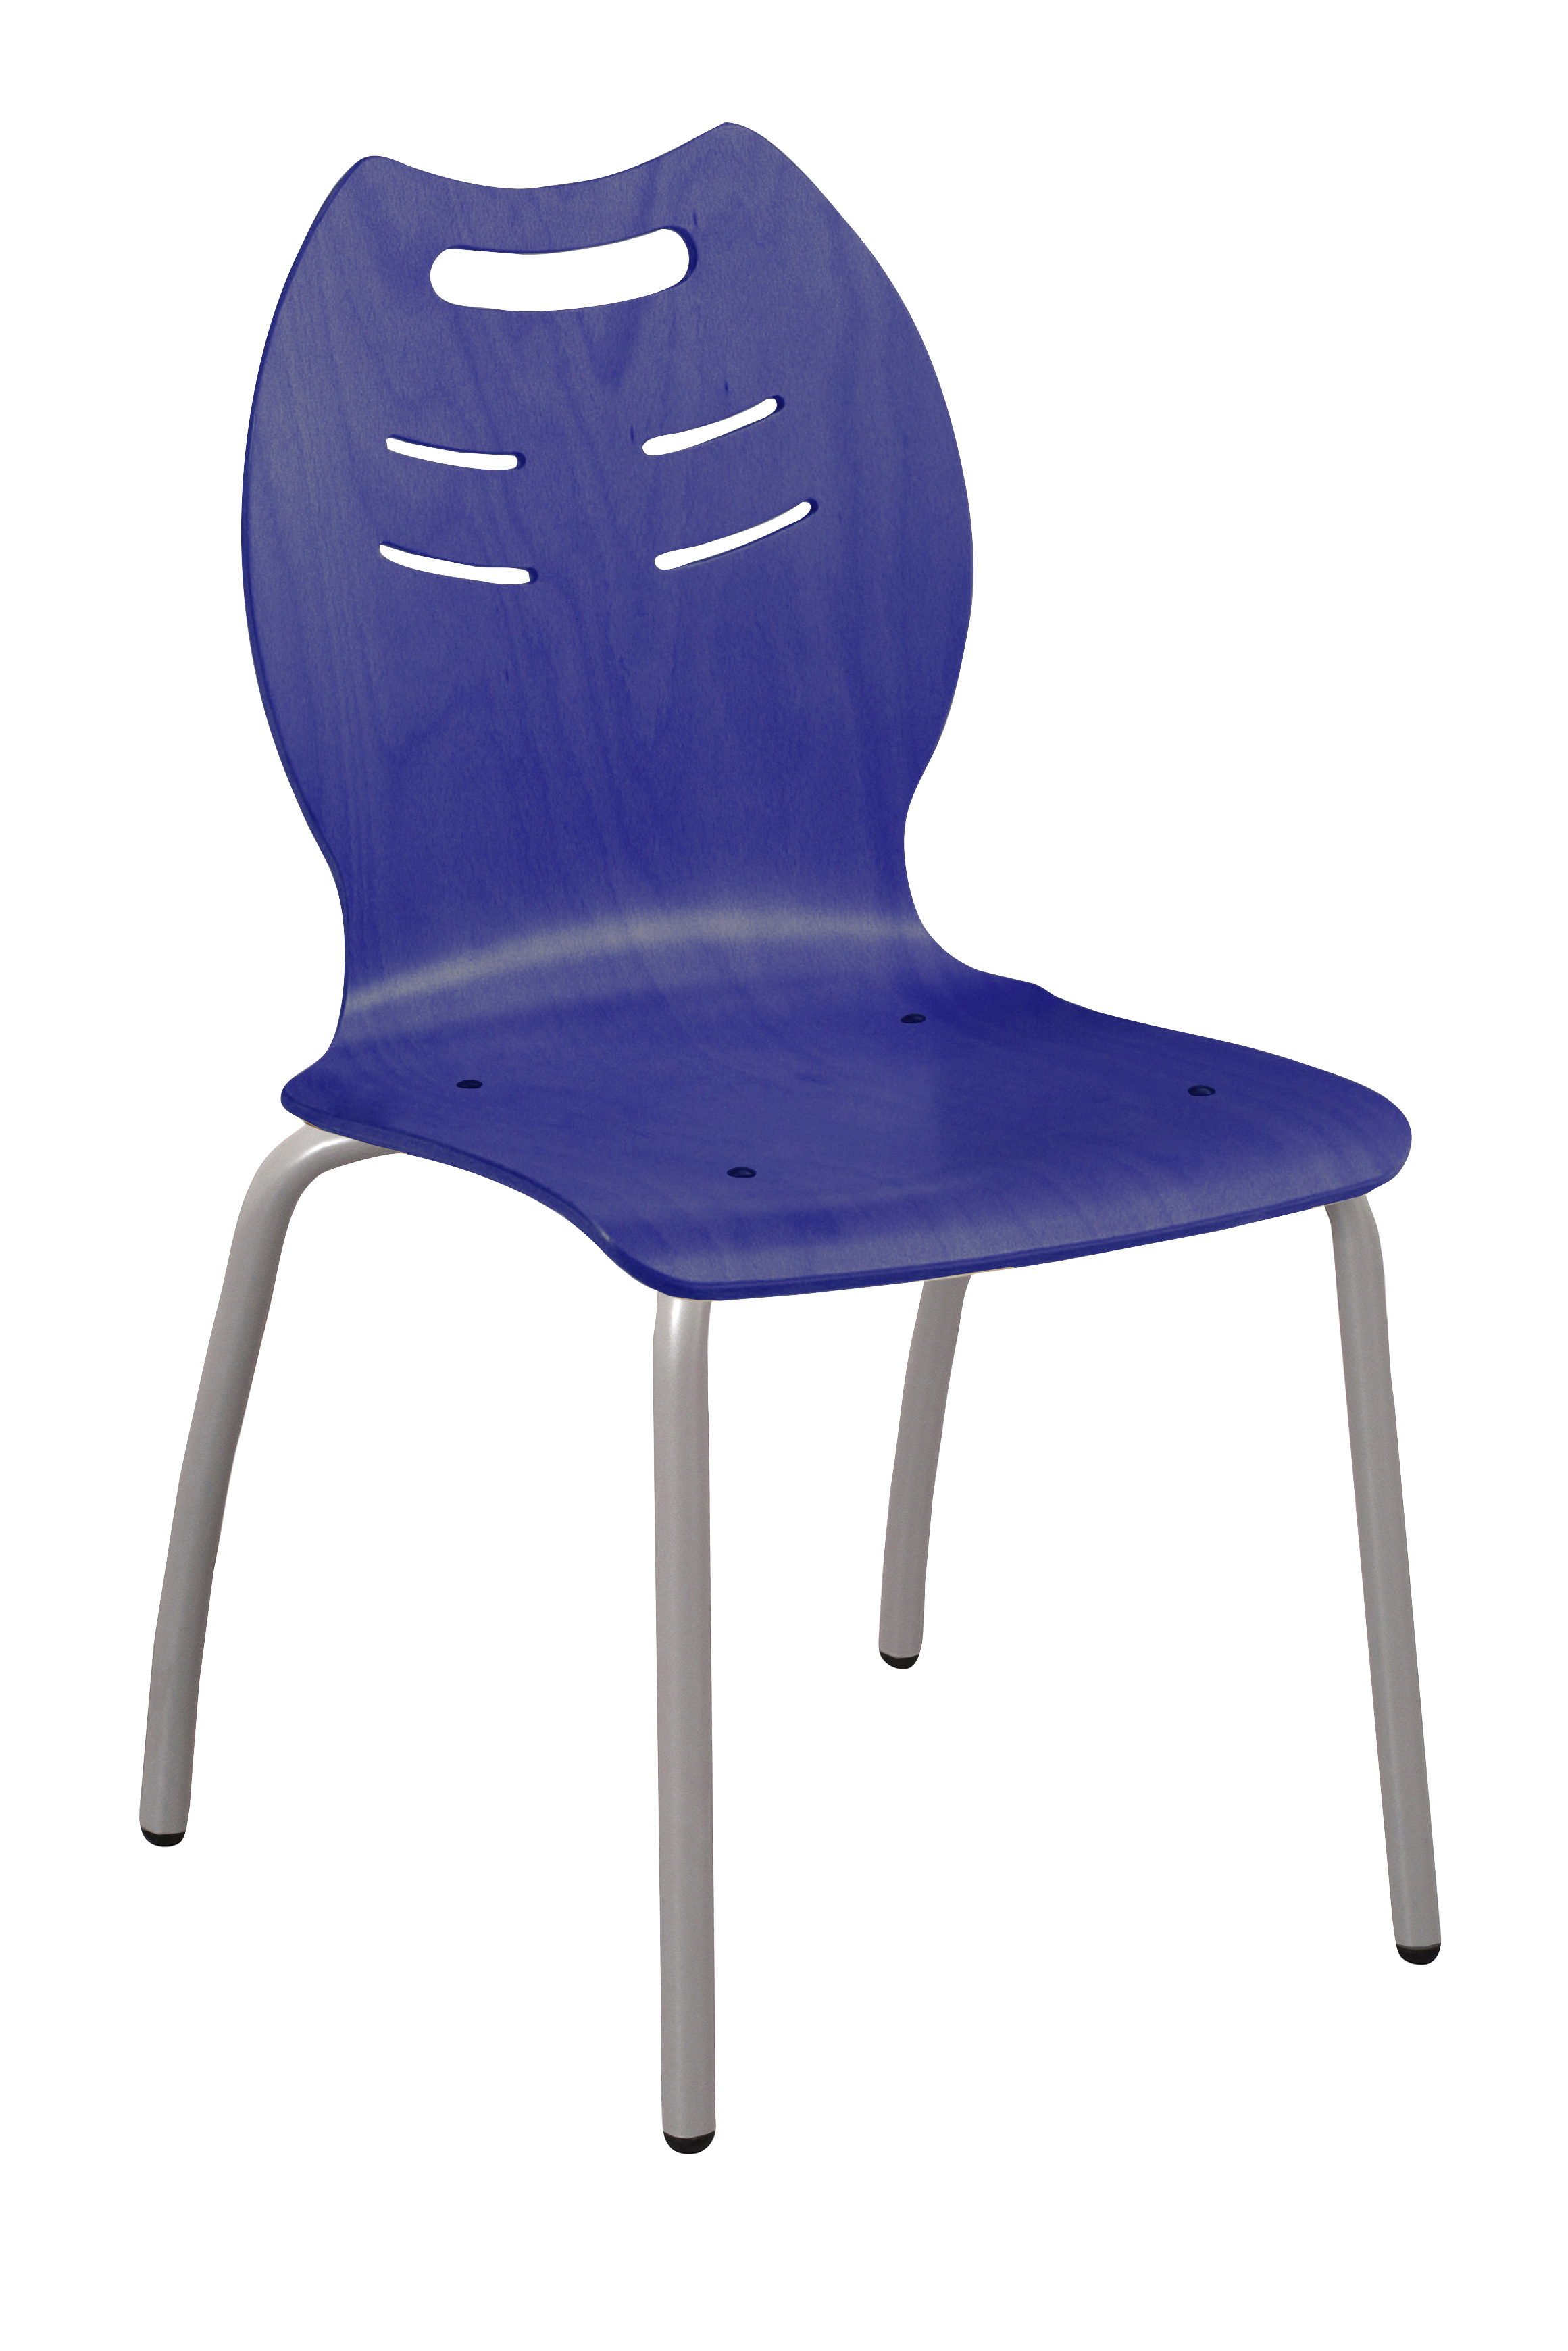 Chaise coque bois 4 pieds 25 simire for 4 pieds 4 chaises givors